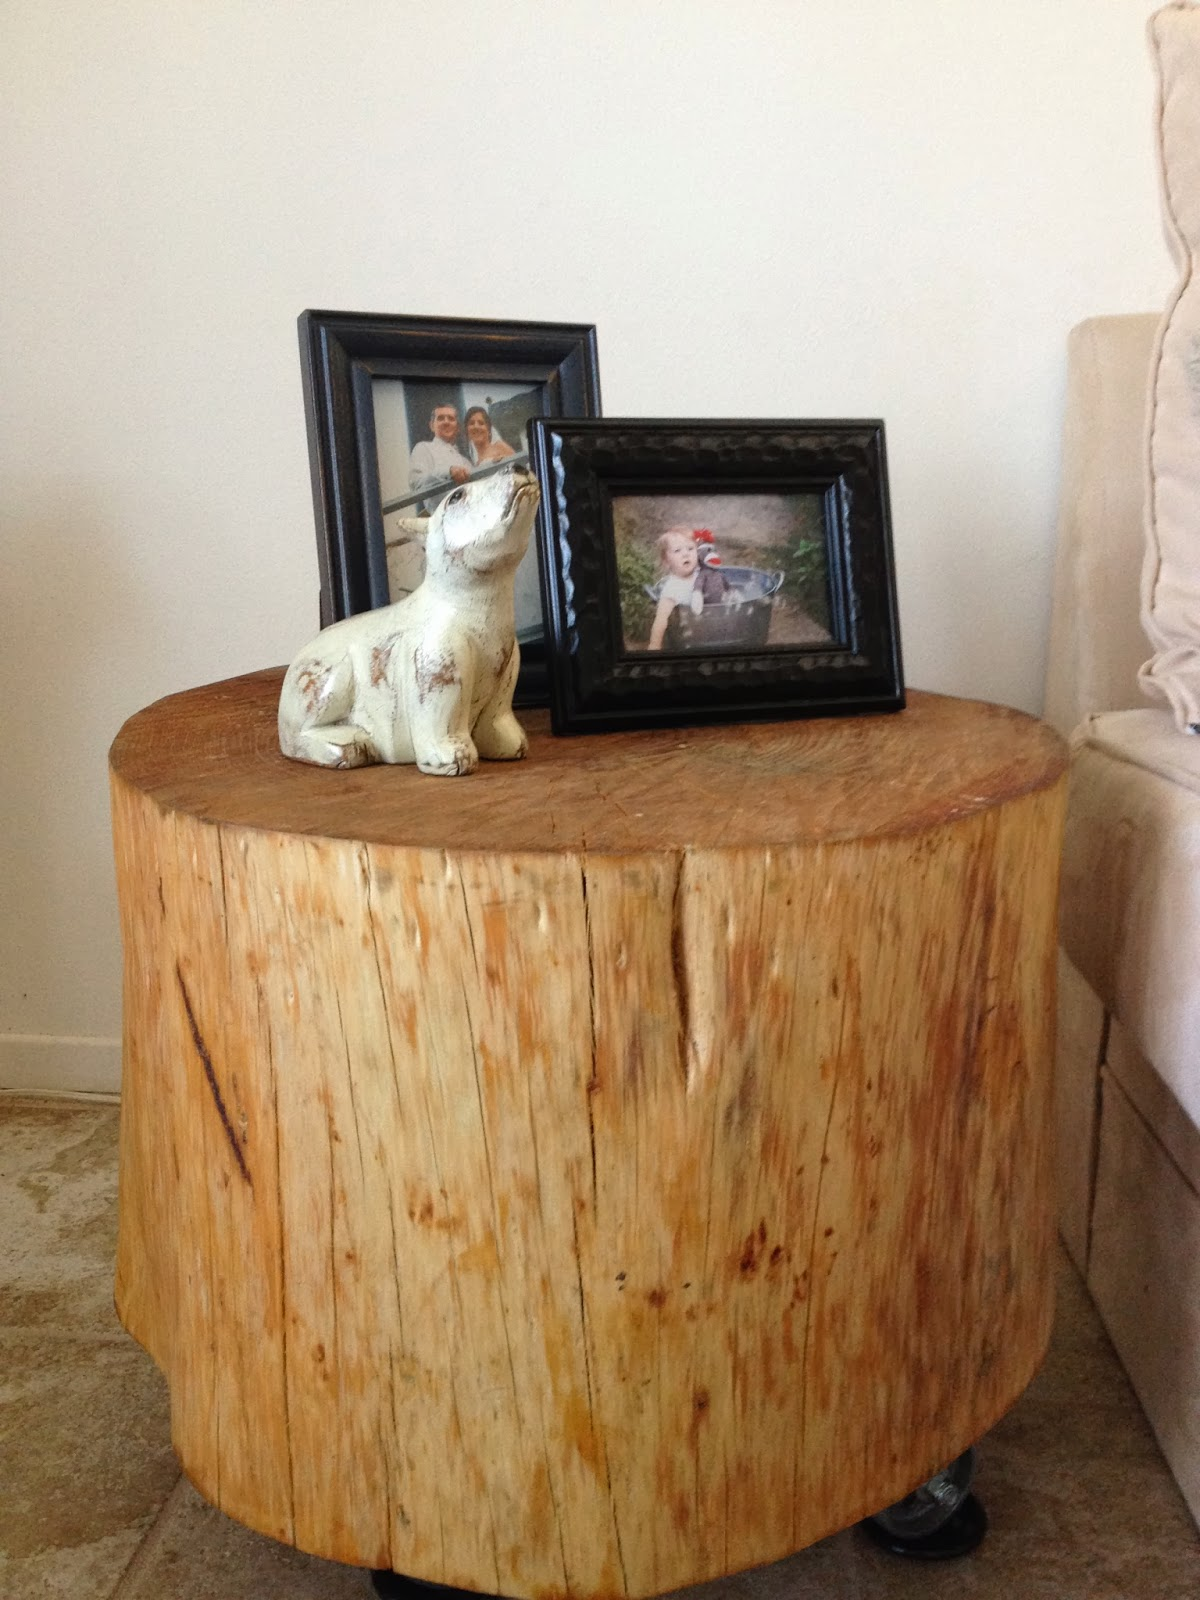 how make handmade natural tree stump side table homesfeed clear stained wood with casters two ture frames black animal miniature accent cream colored tables target high top ikea